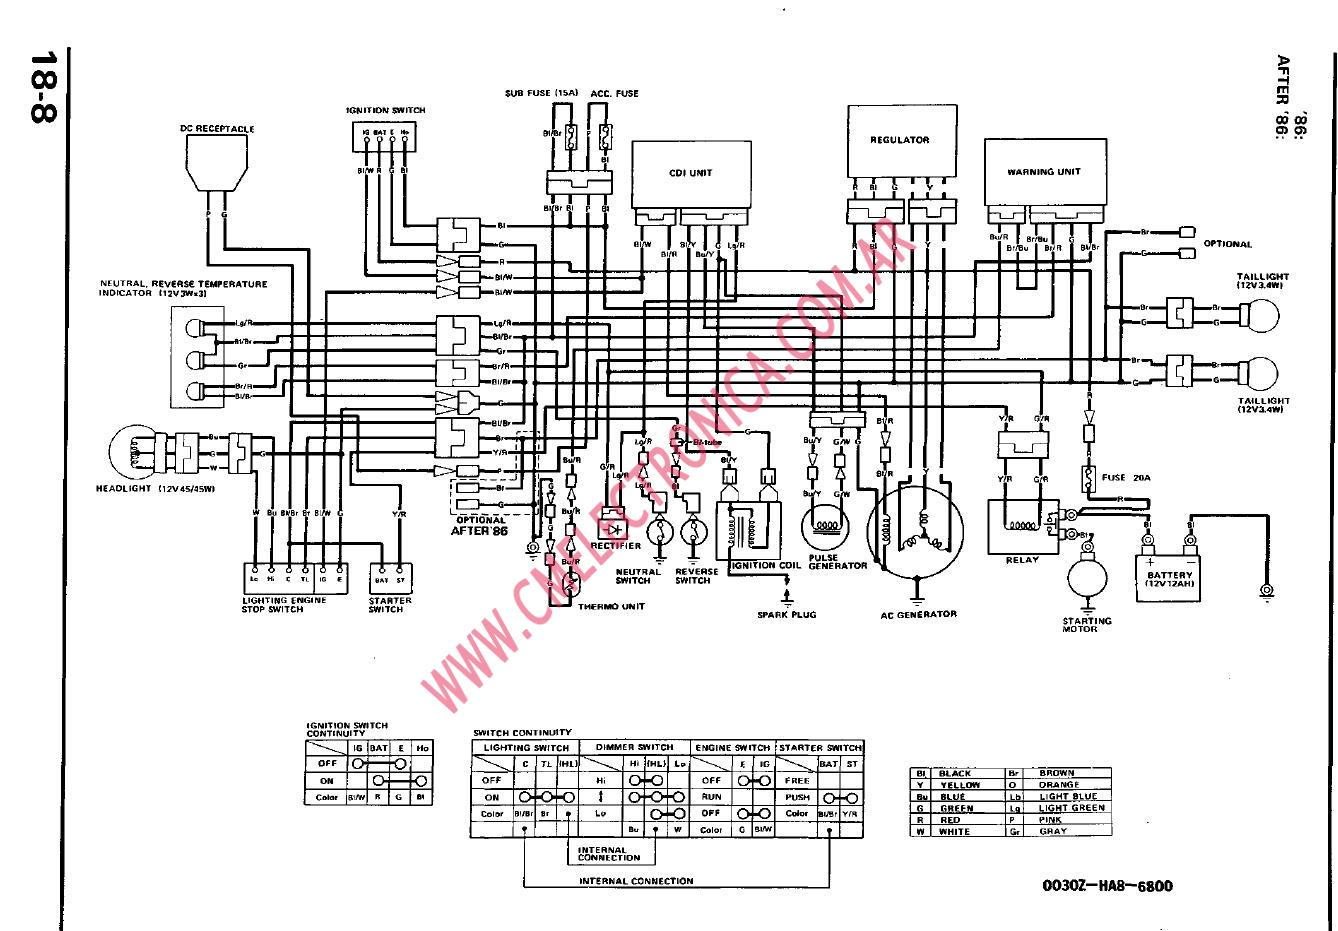 Honda Recon 250 Parts Diagram on wiring diagram picture honda rancher 350 es 2002